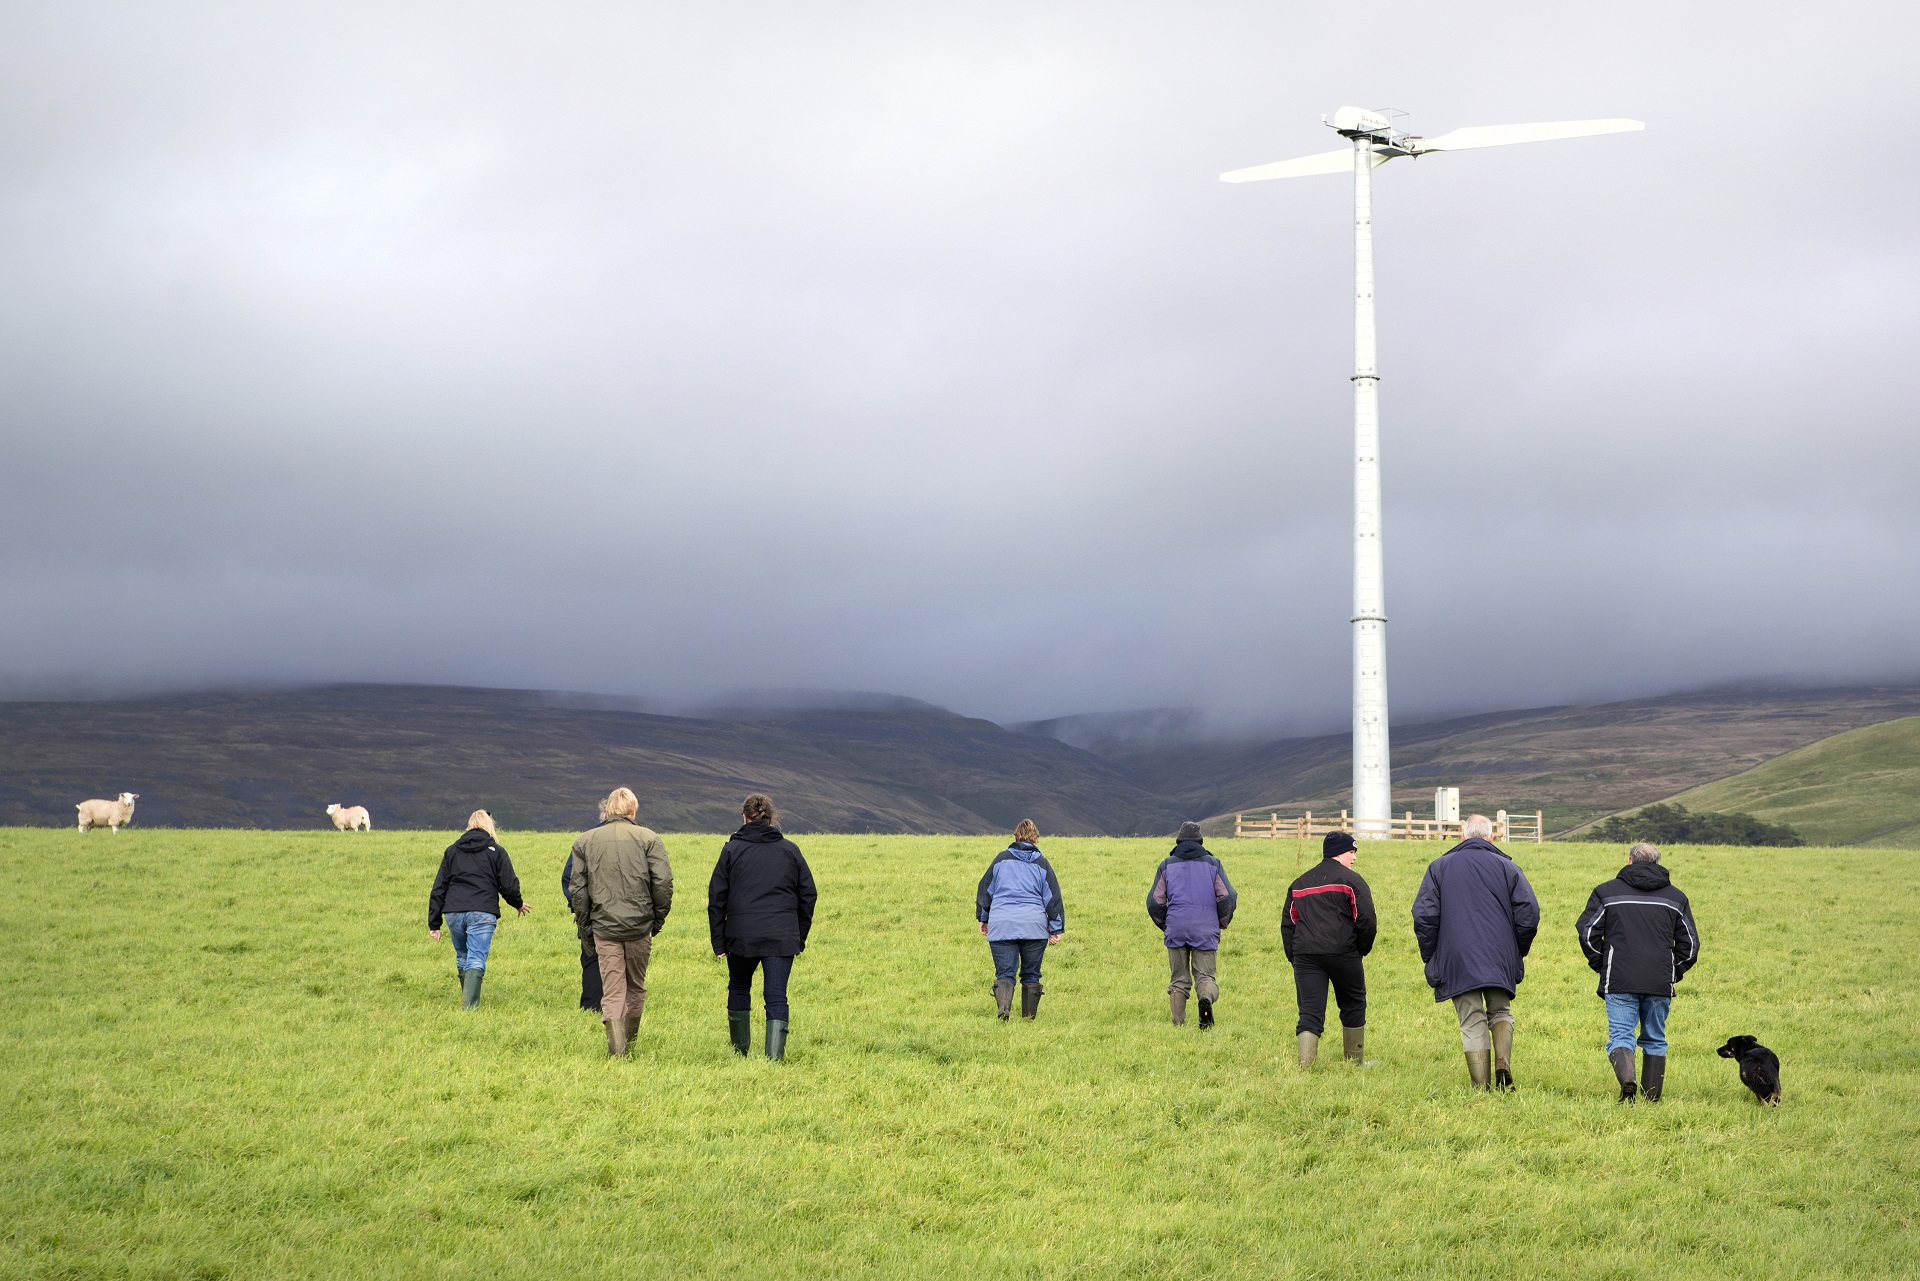 A visit to a Cumbrian windfarm - Photo by Jo Leary